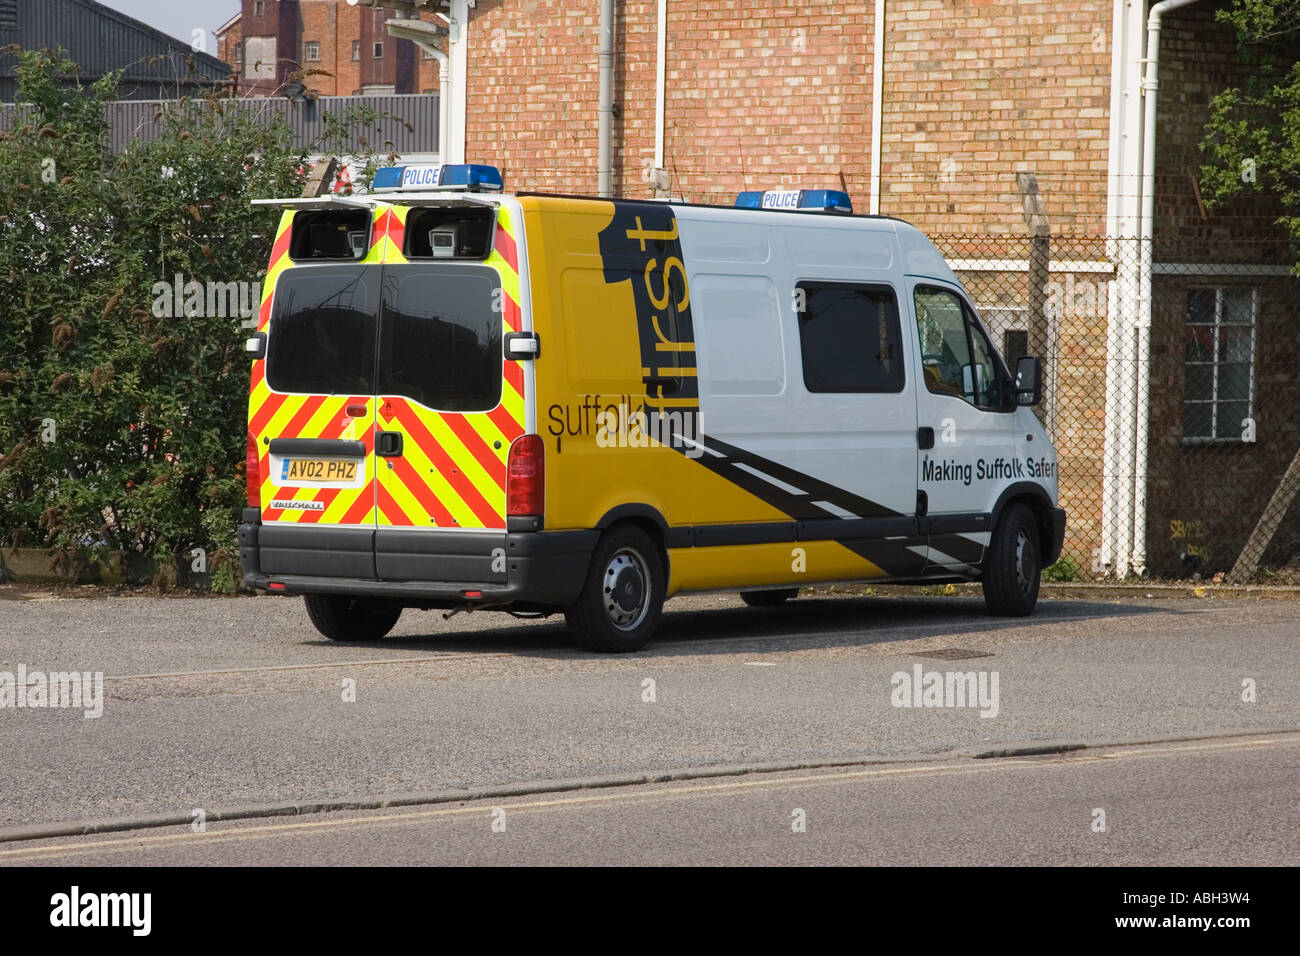 A police operated camera van in UK Stock Photo